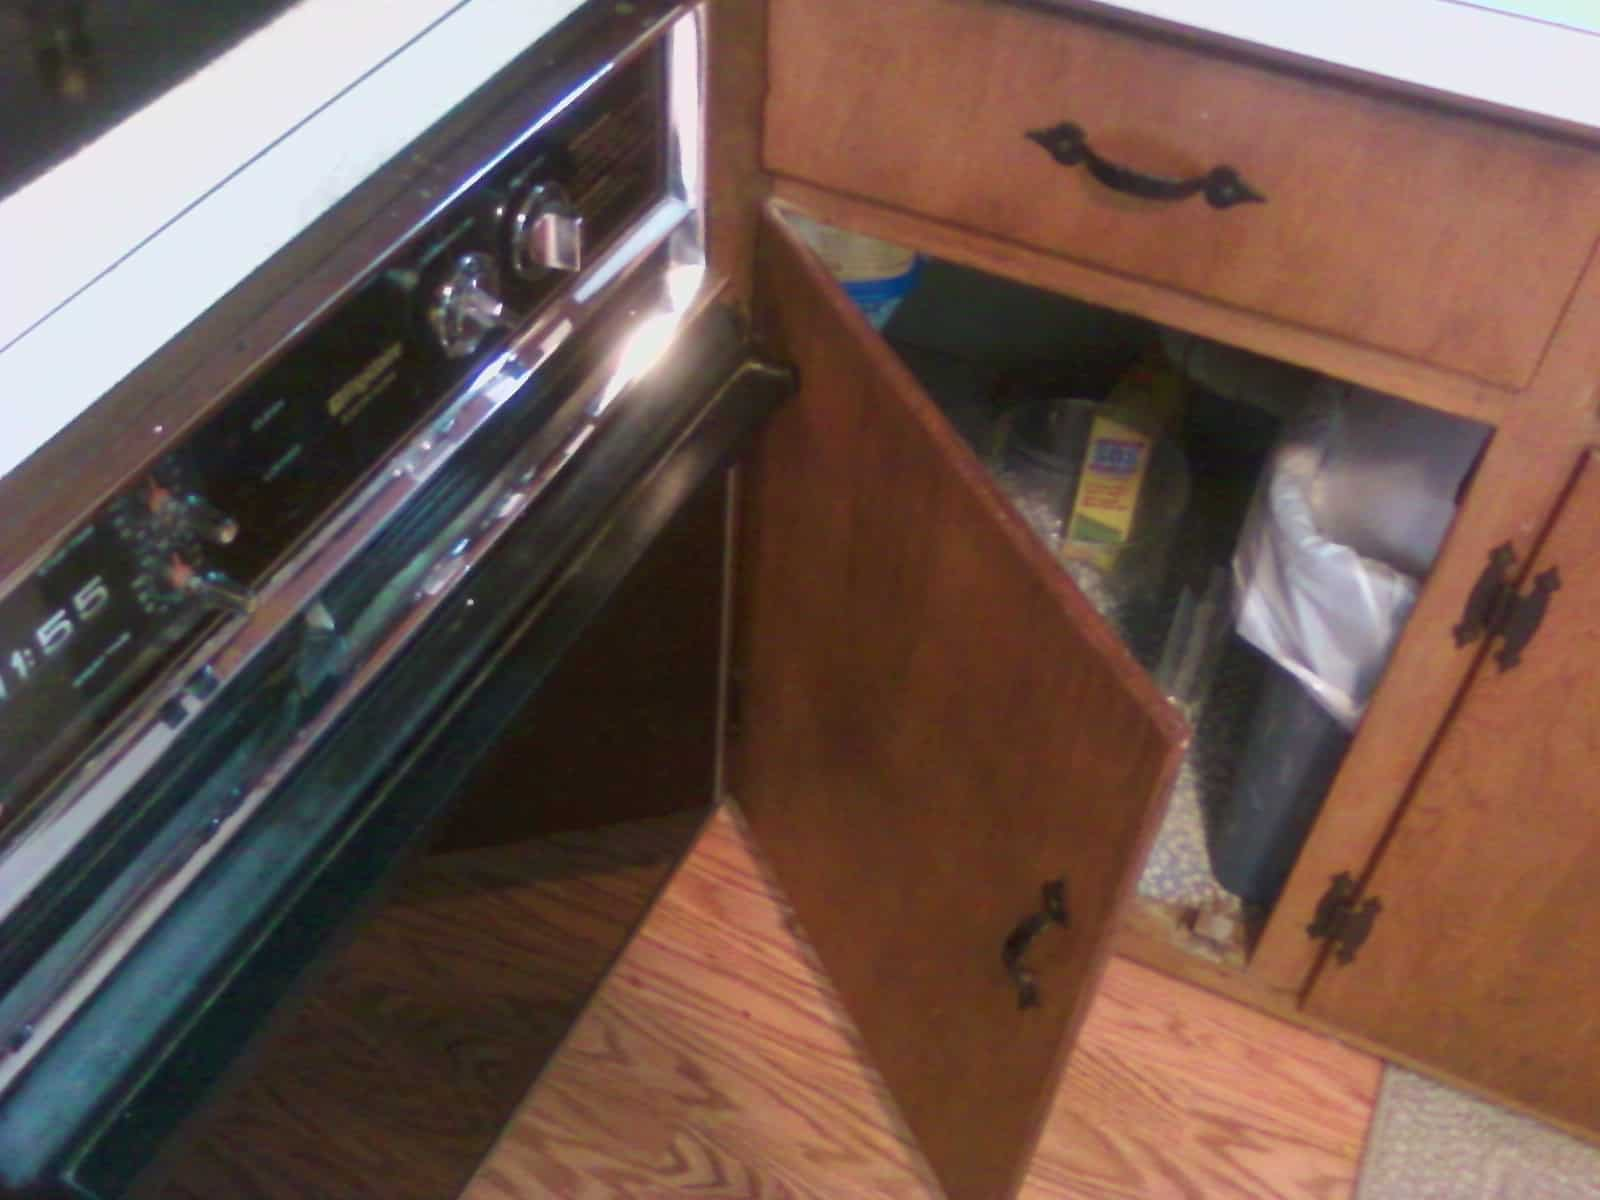 Cabinet that doesn't even open